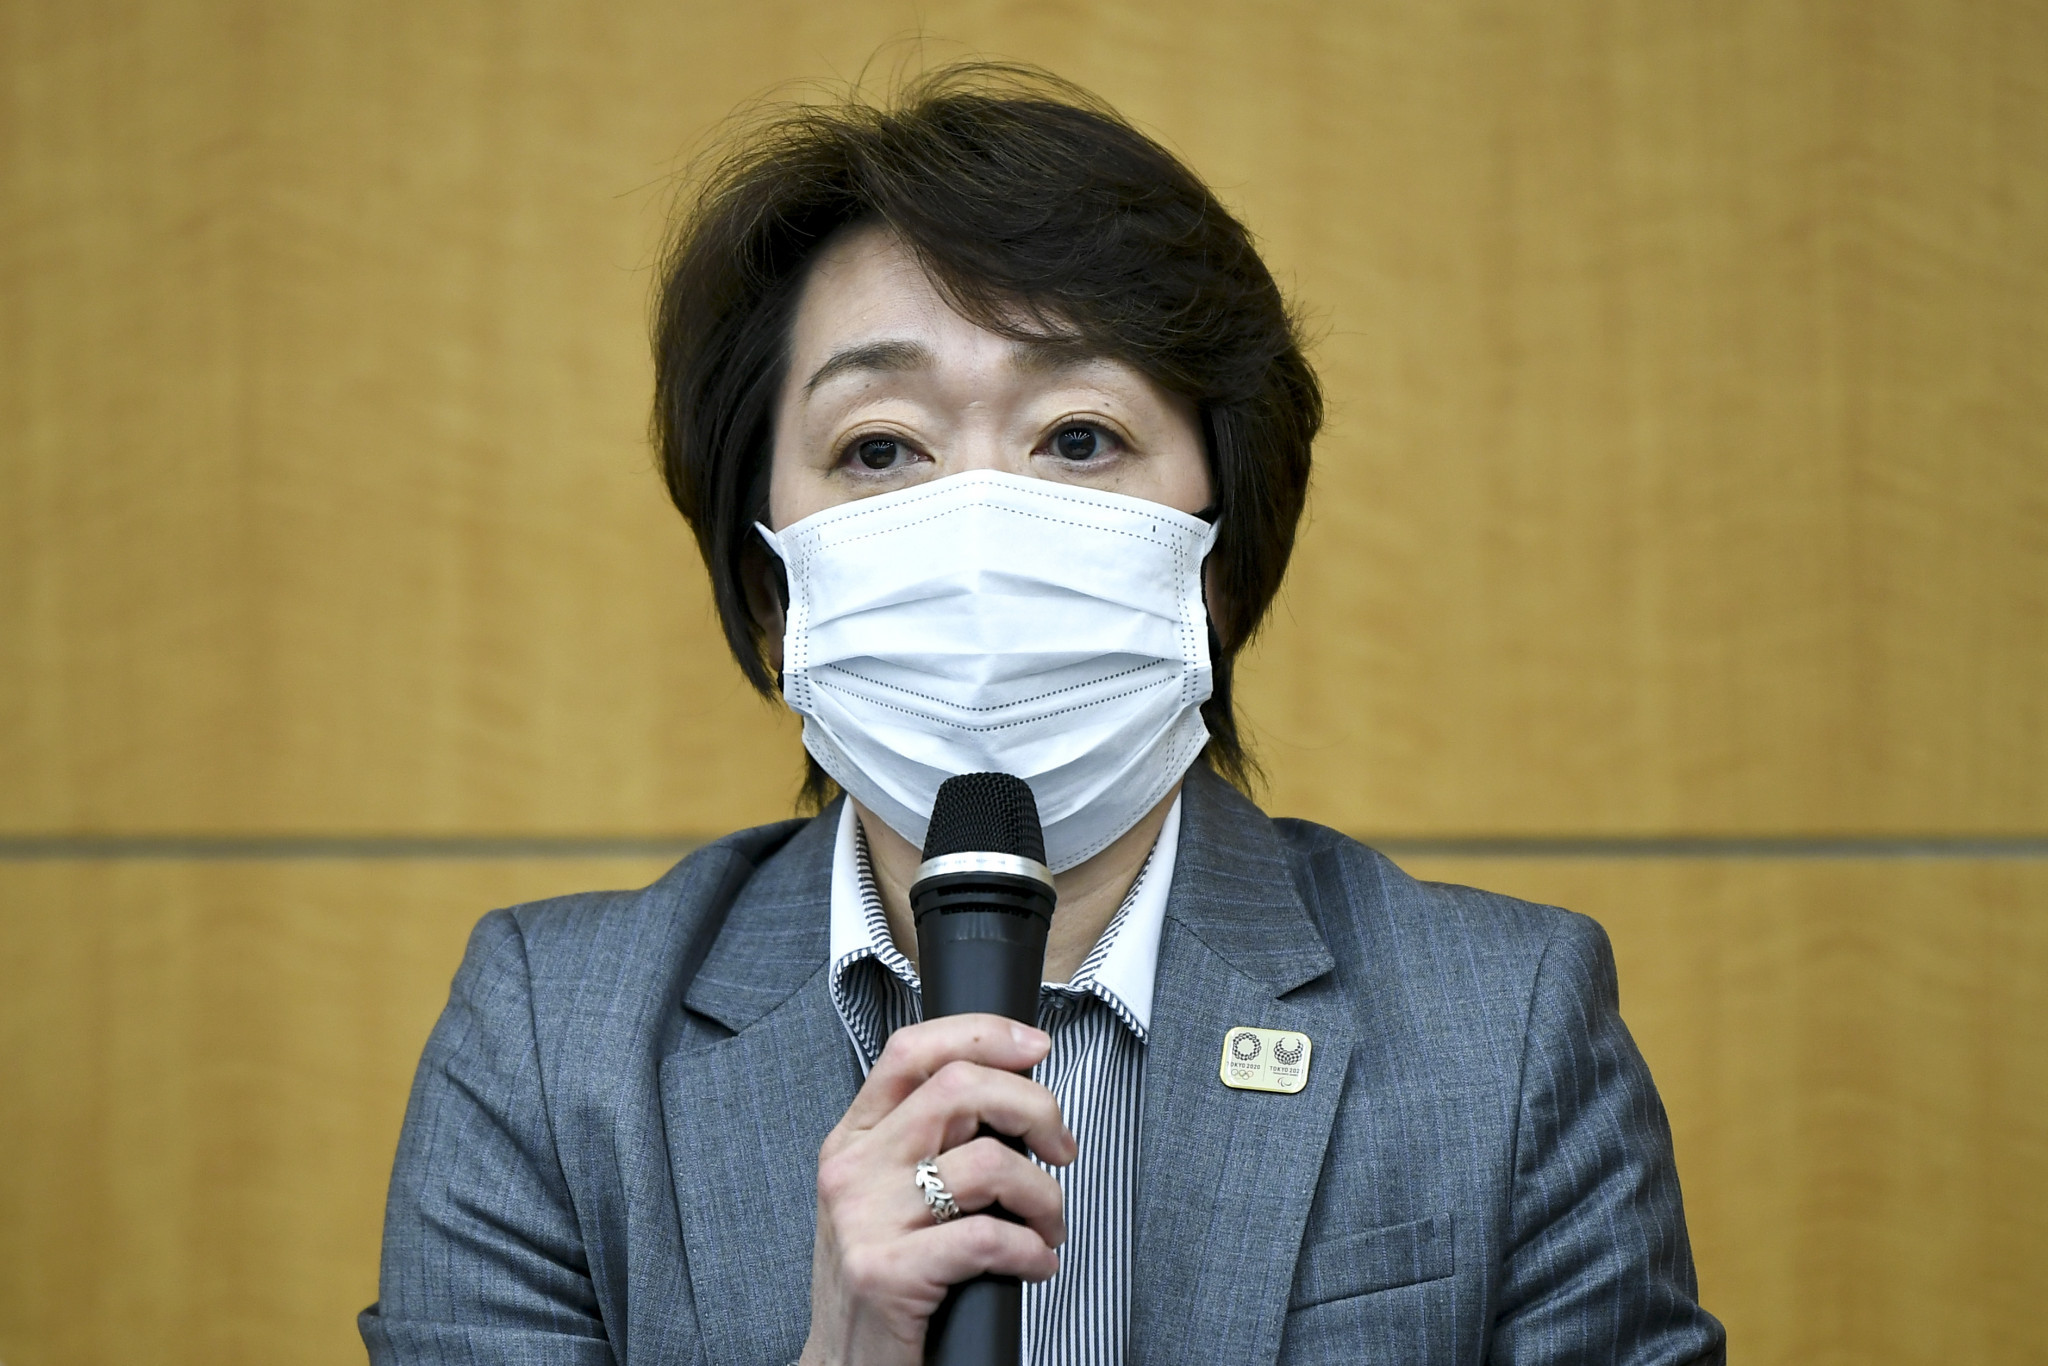 Tokyo 2020 President Seiko Hashimoto is expected to announce tomorrow that international spectators will be banned from the Olympic Games ©Getty Images